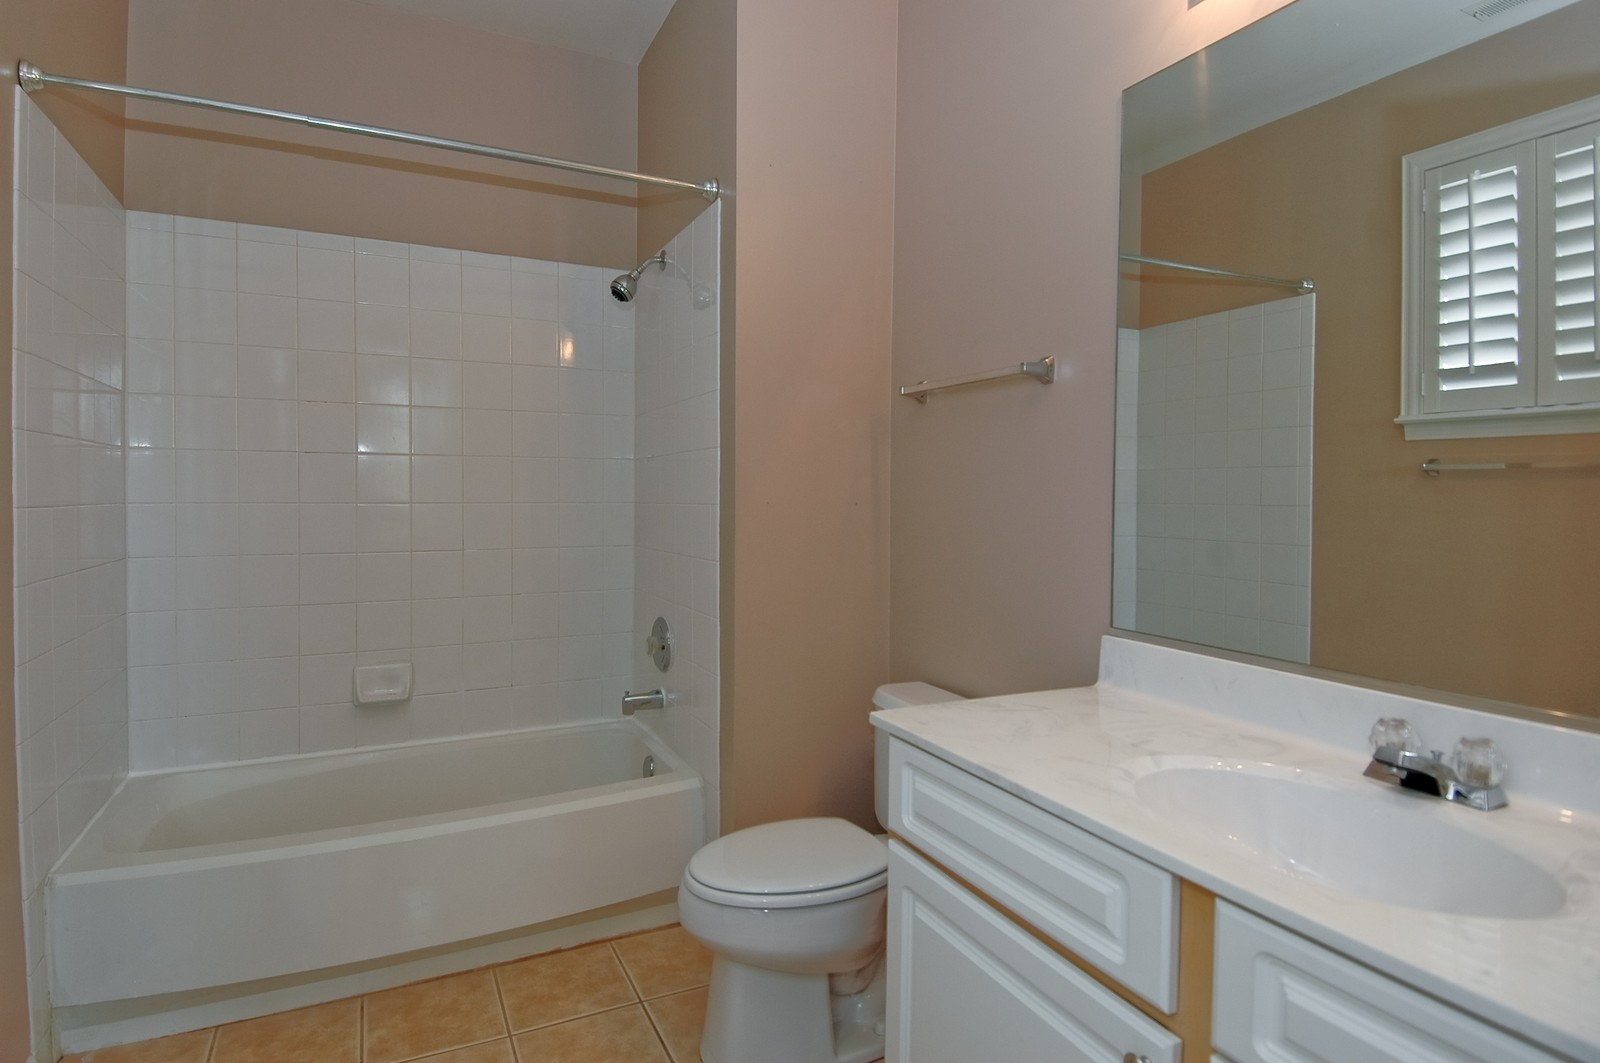 Real Estate Photography - 1681 Carlemont, Unit A, Crystal Lake, IL, 60014 - Bathroom